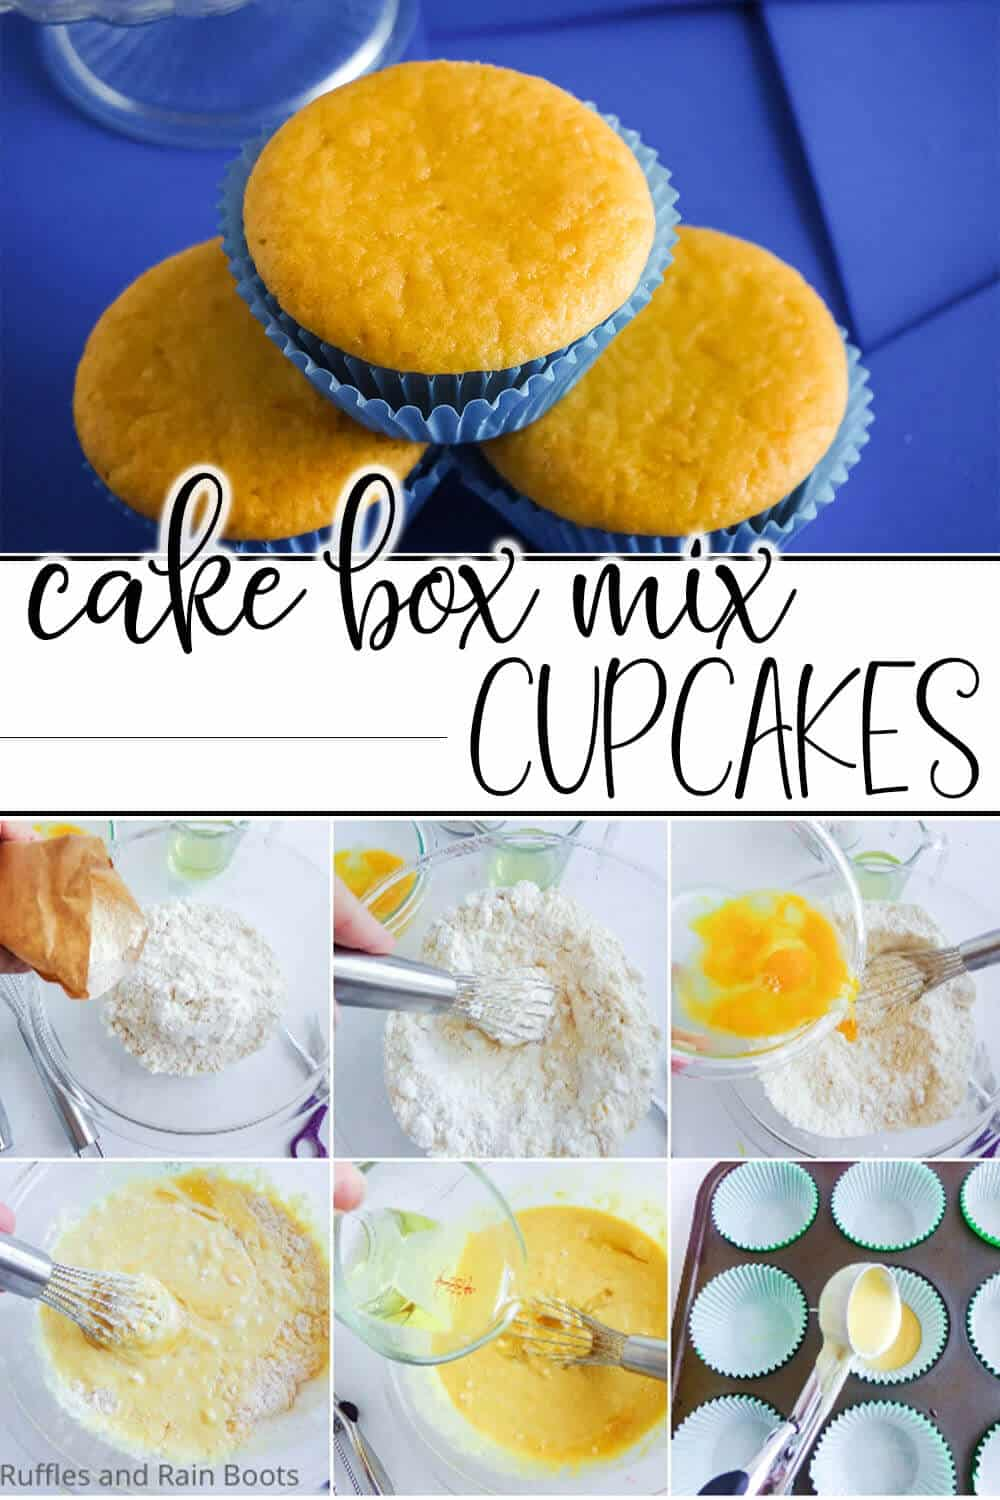 photo collage of cake box mix hack to make cupcakes with text which reads cake box mix cupcakes